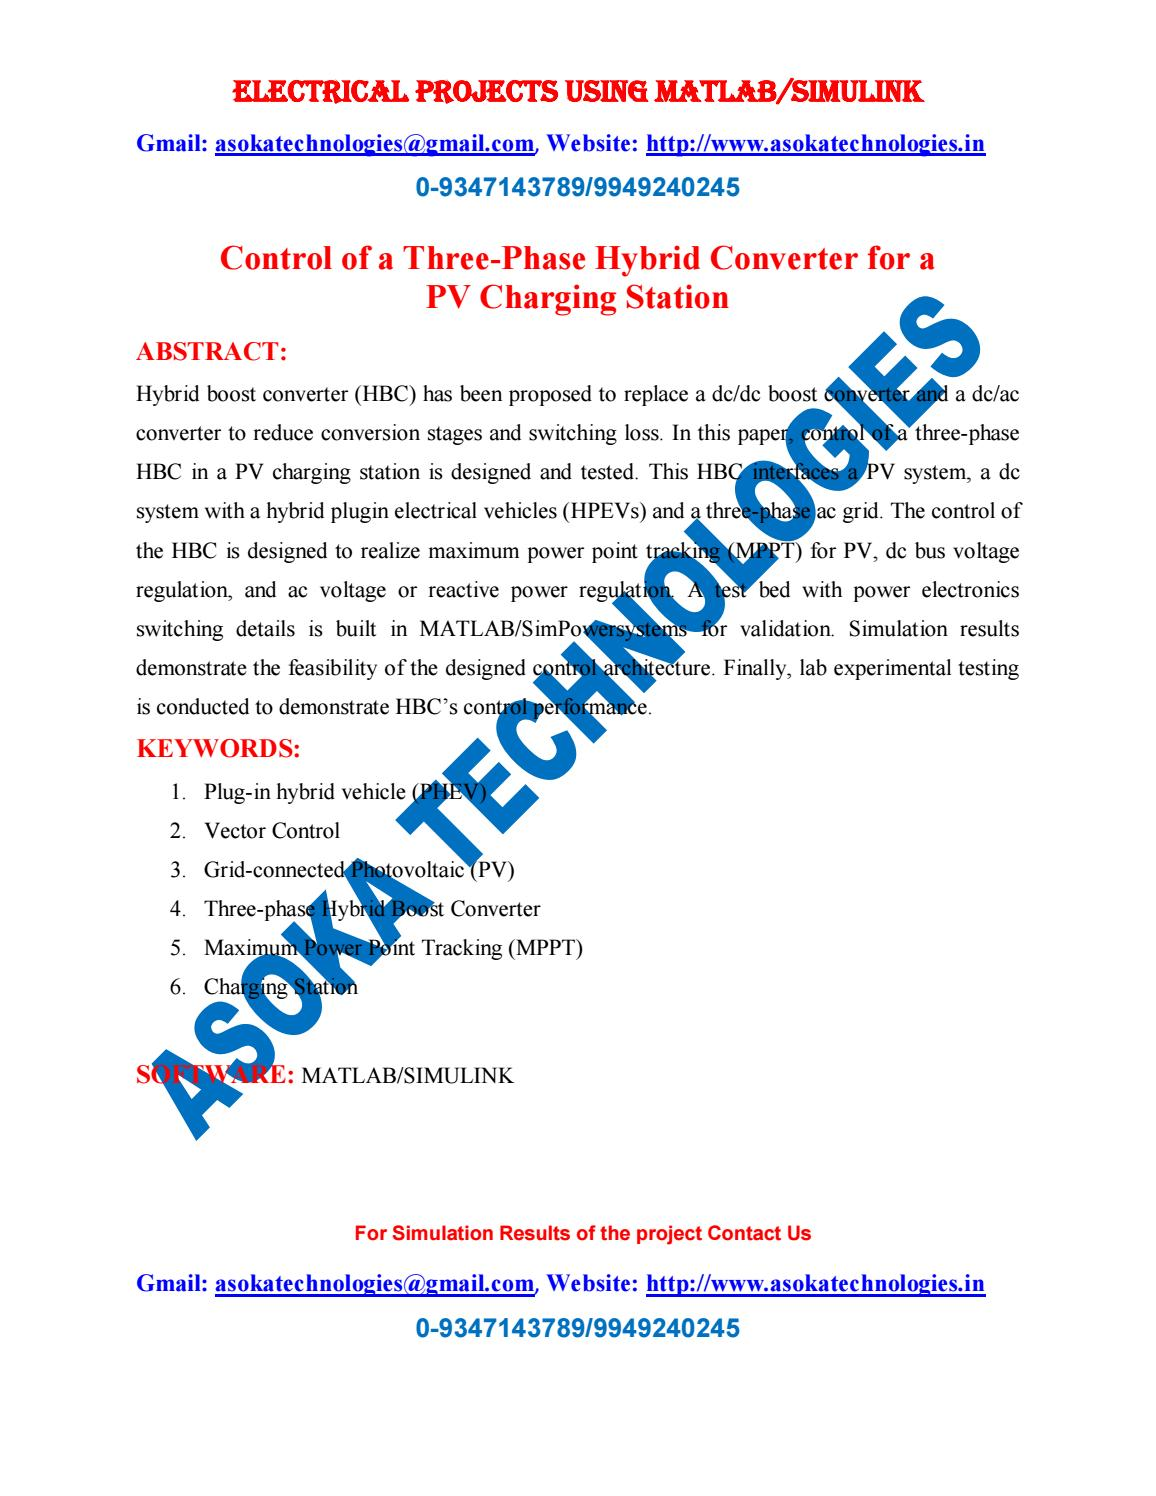 Control of a Three-Phase Hybrid Converter for a PV Charging